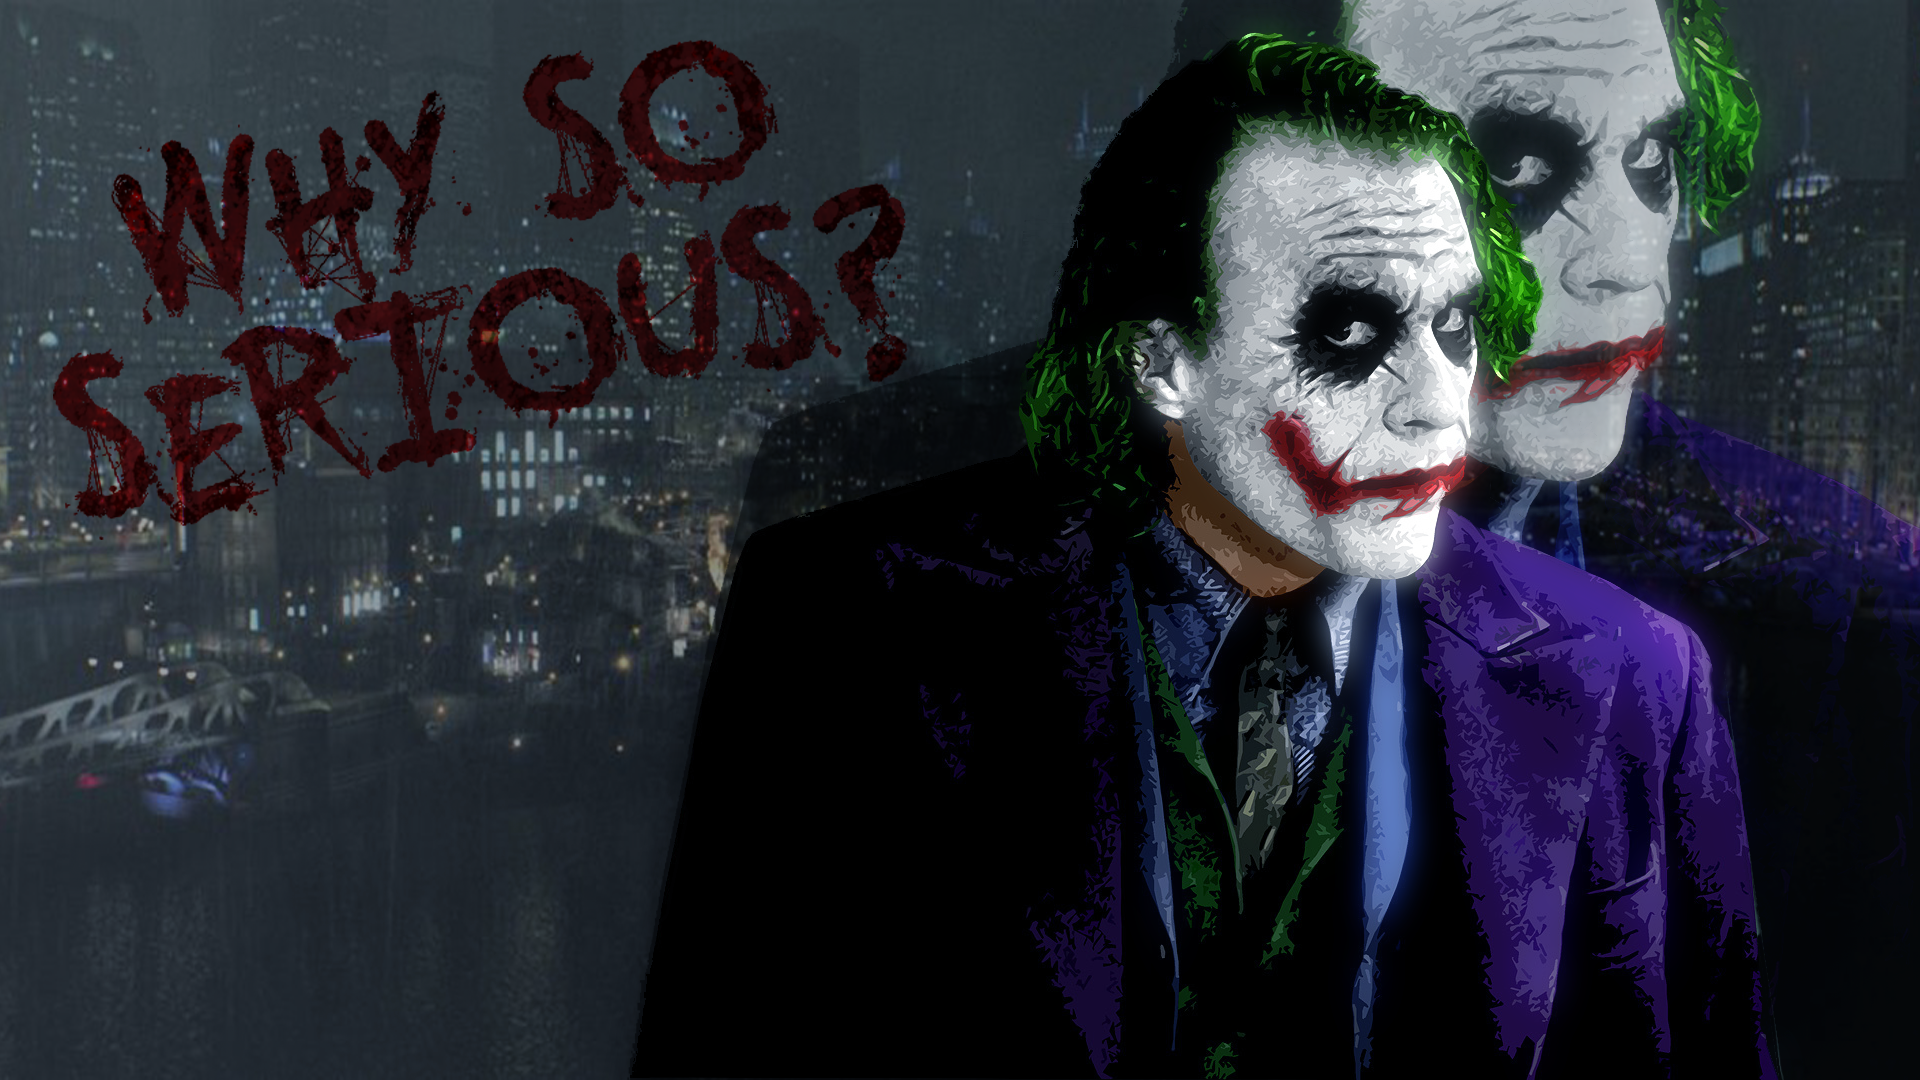 Joker Wallpapers In Hq Resolution 47 B Scb Wallpapers